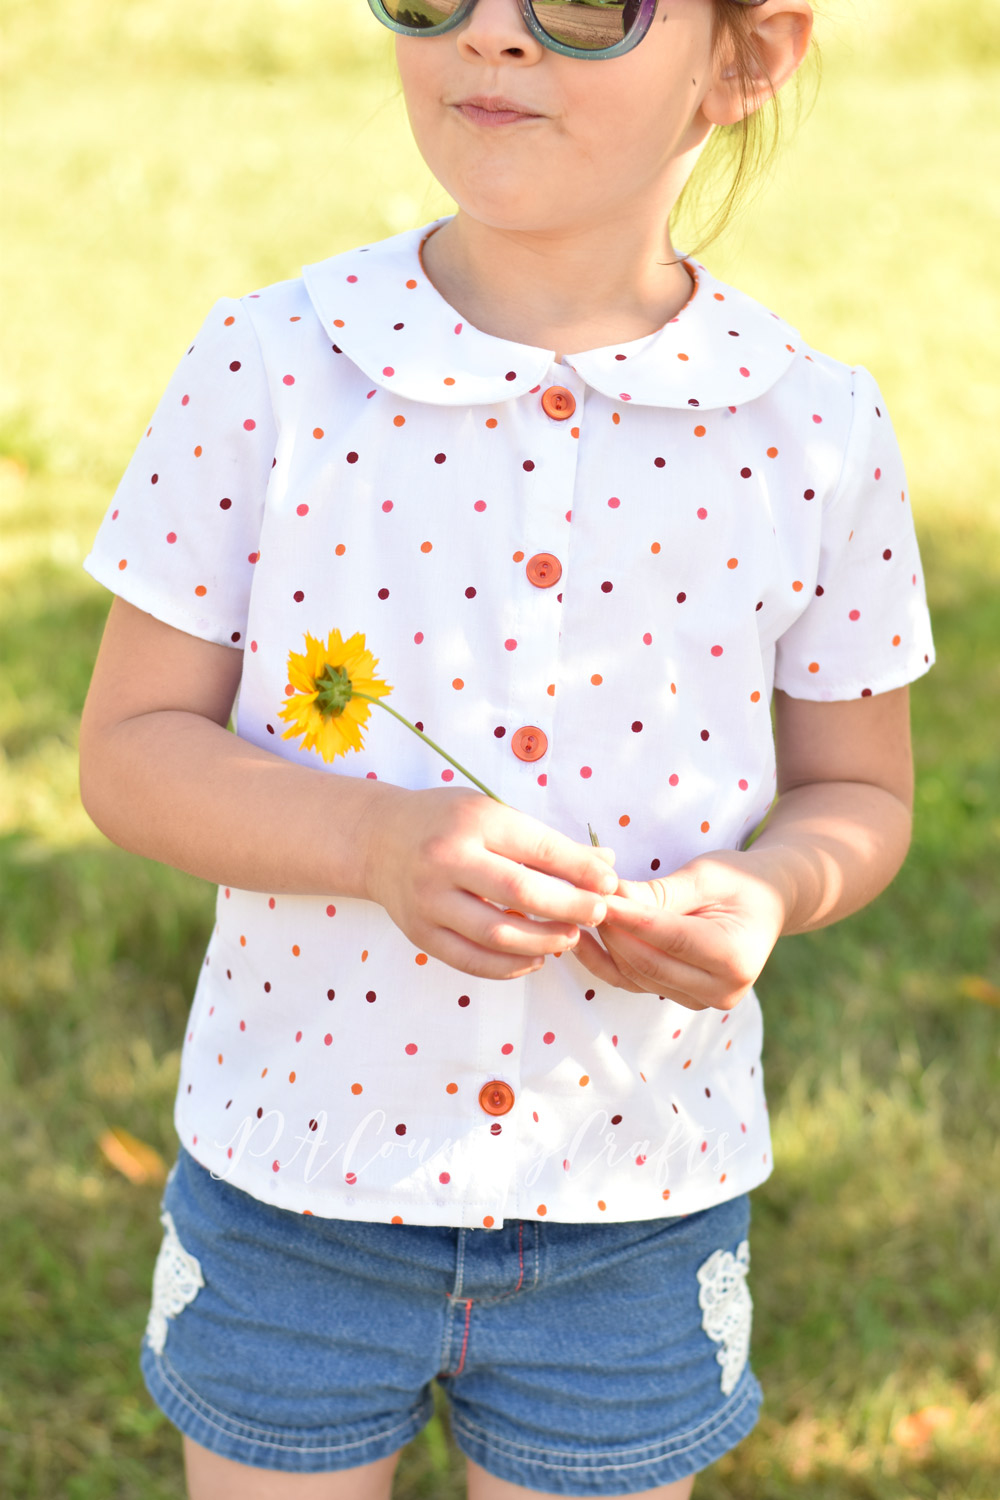 Girls blouse made from a flat sheet! Maria Blouse from Project Run and Play shop